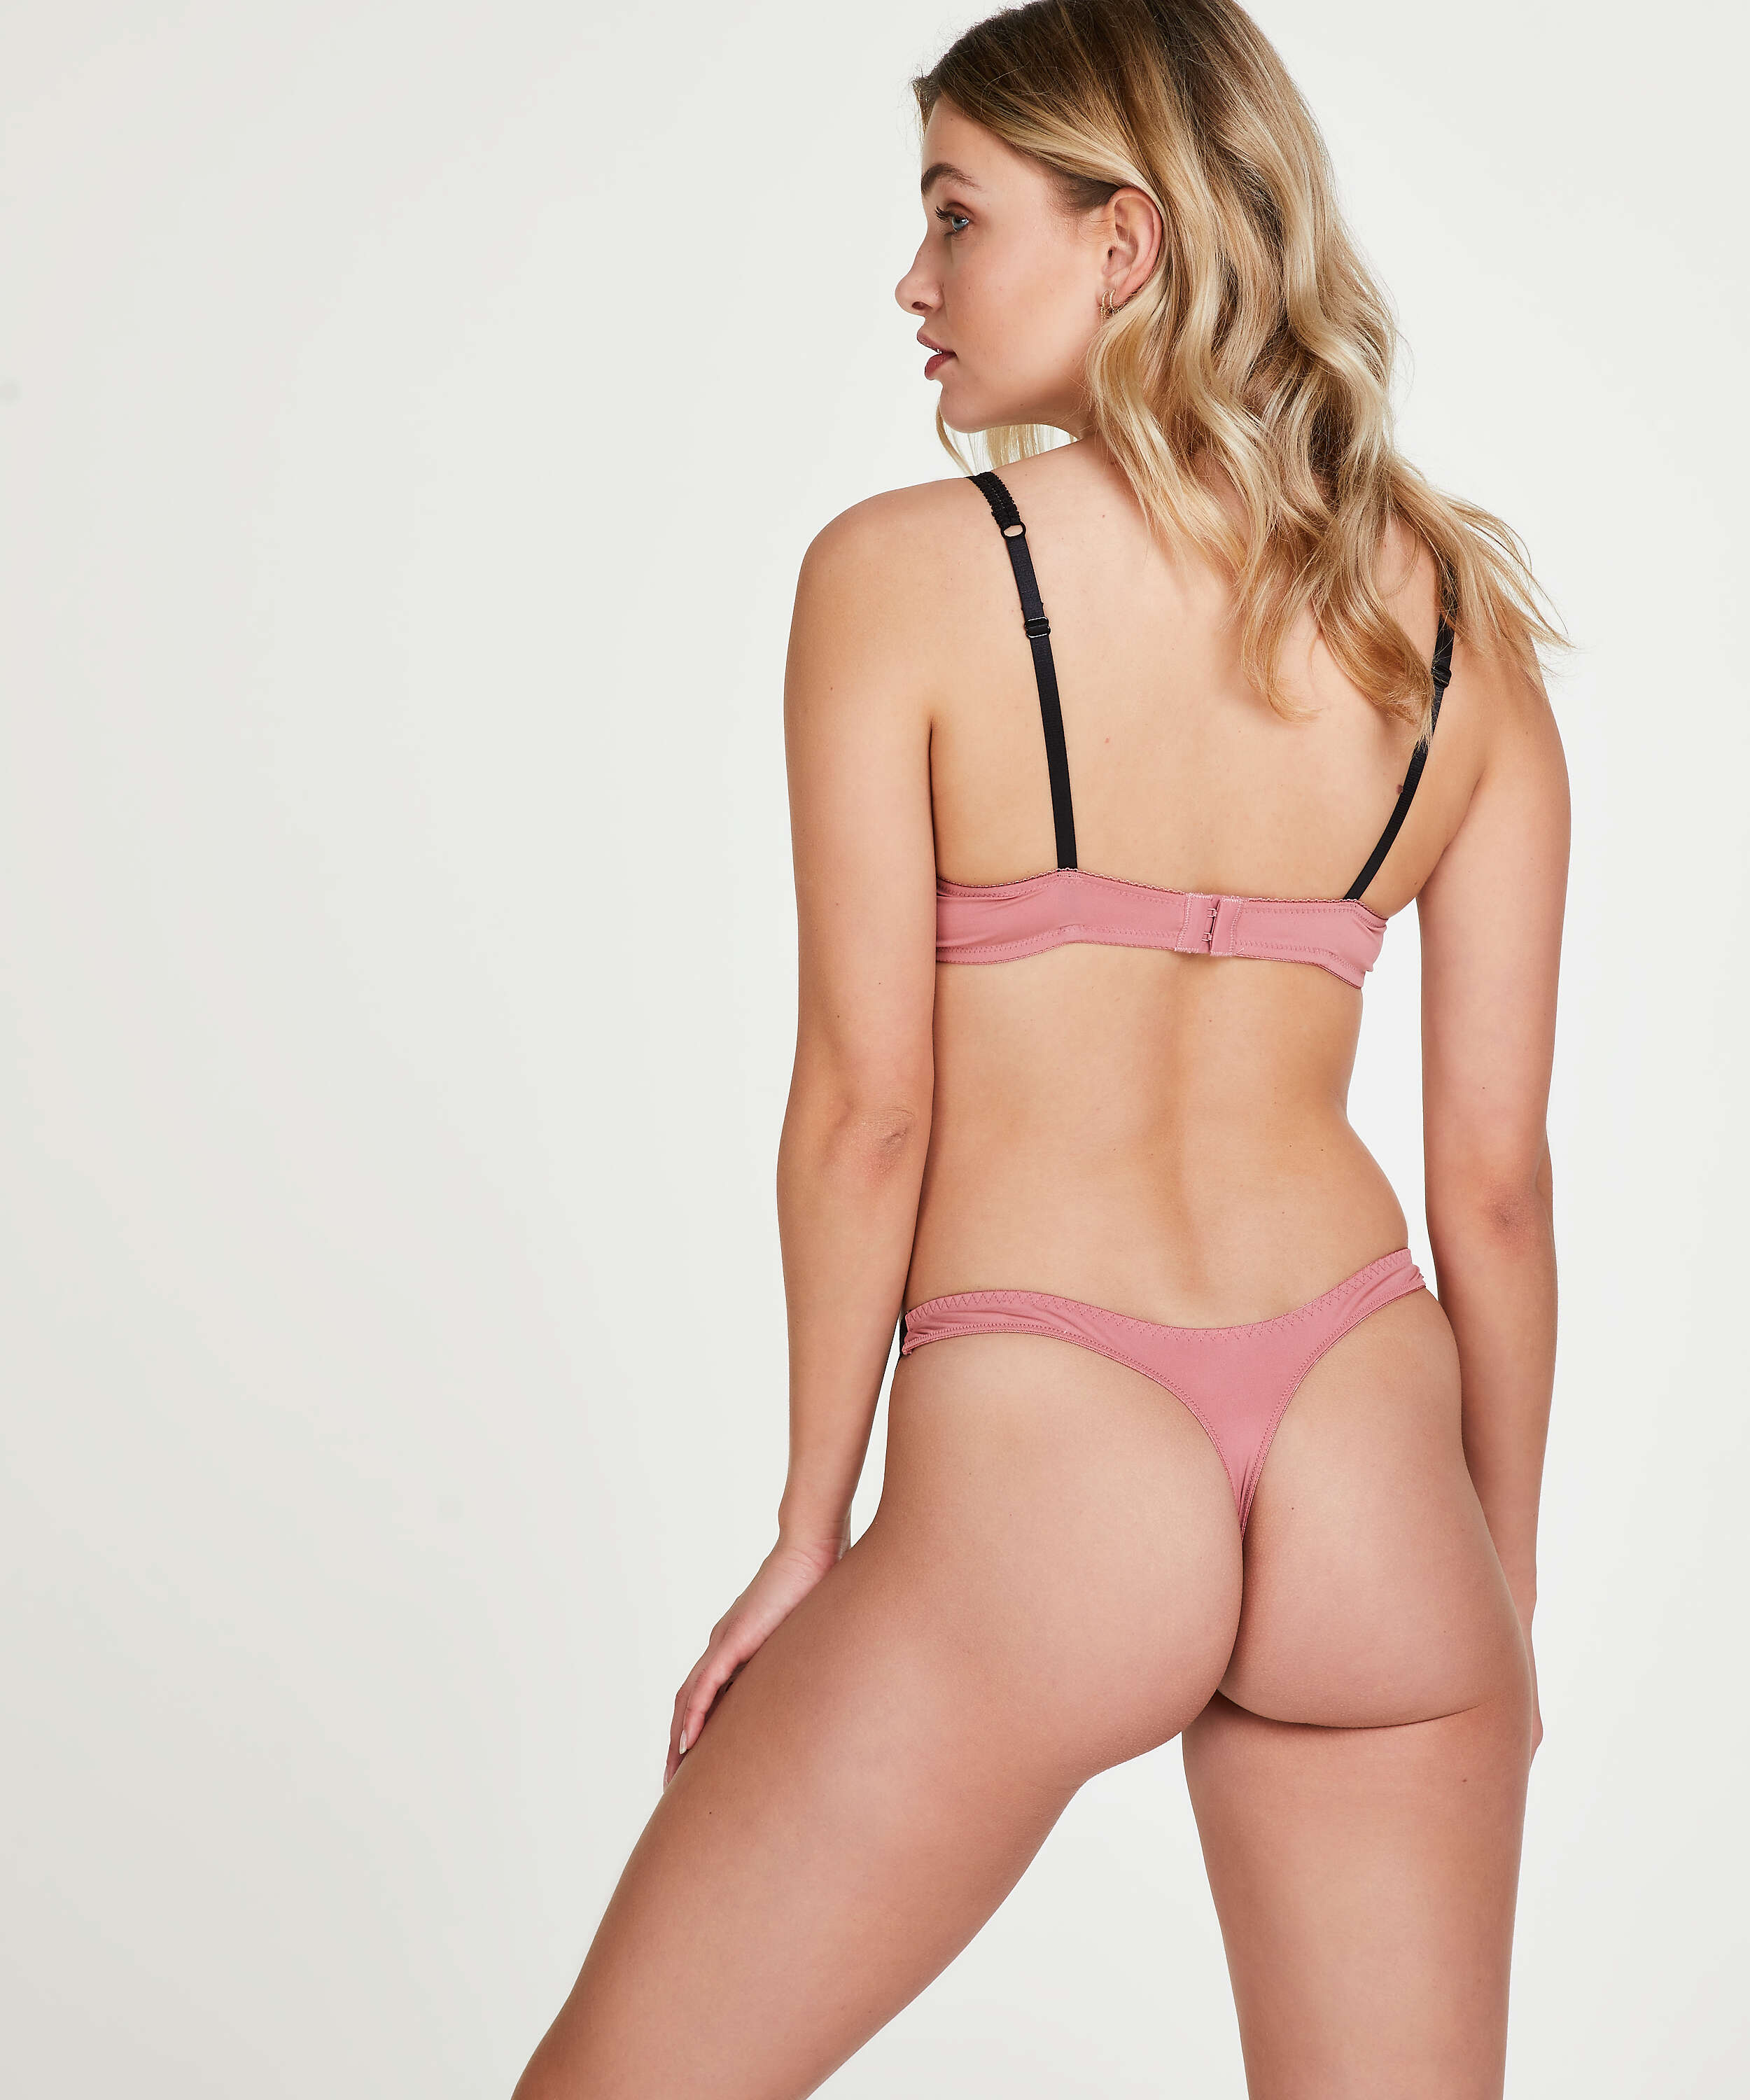 Secret Lace Thong, Pink, main